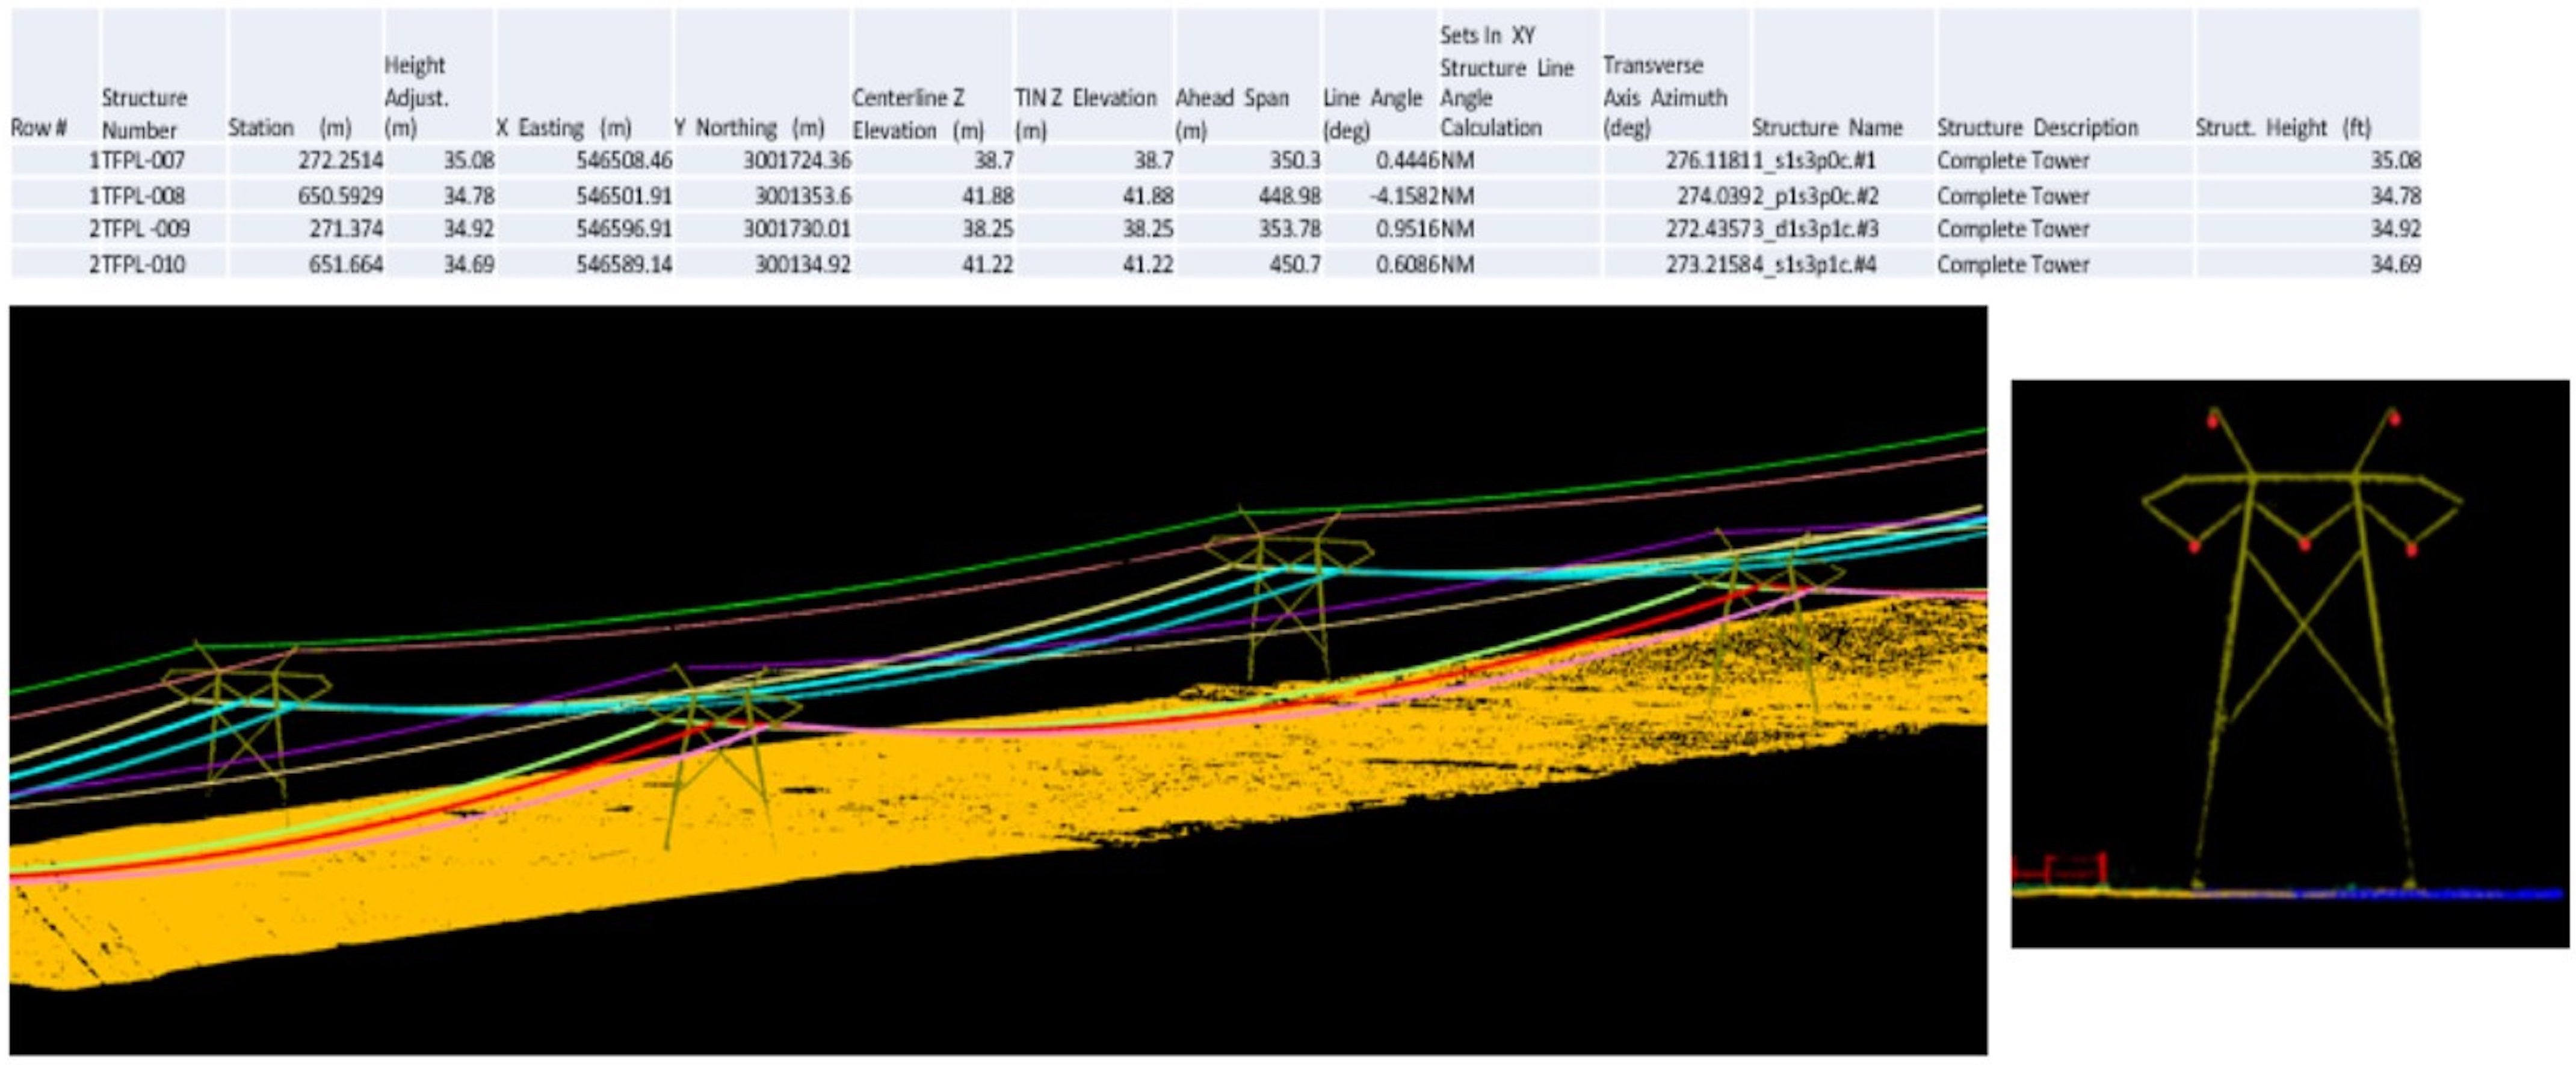 Fig. 3: Transmission analysis report and data from drone lidar.